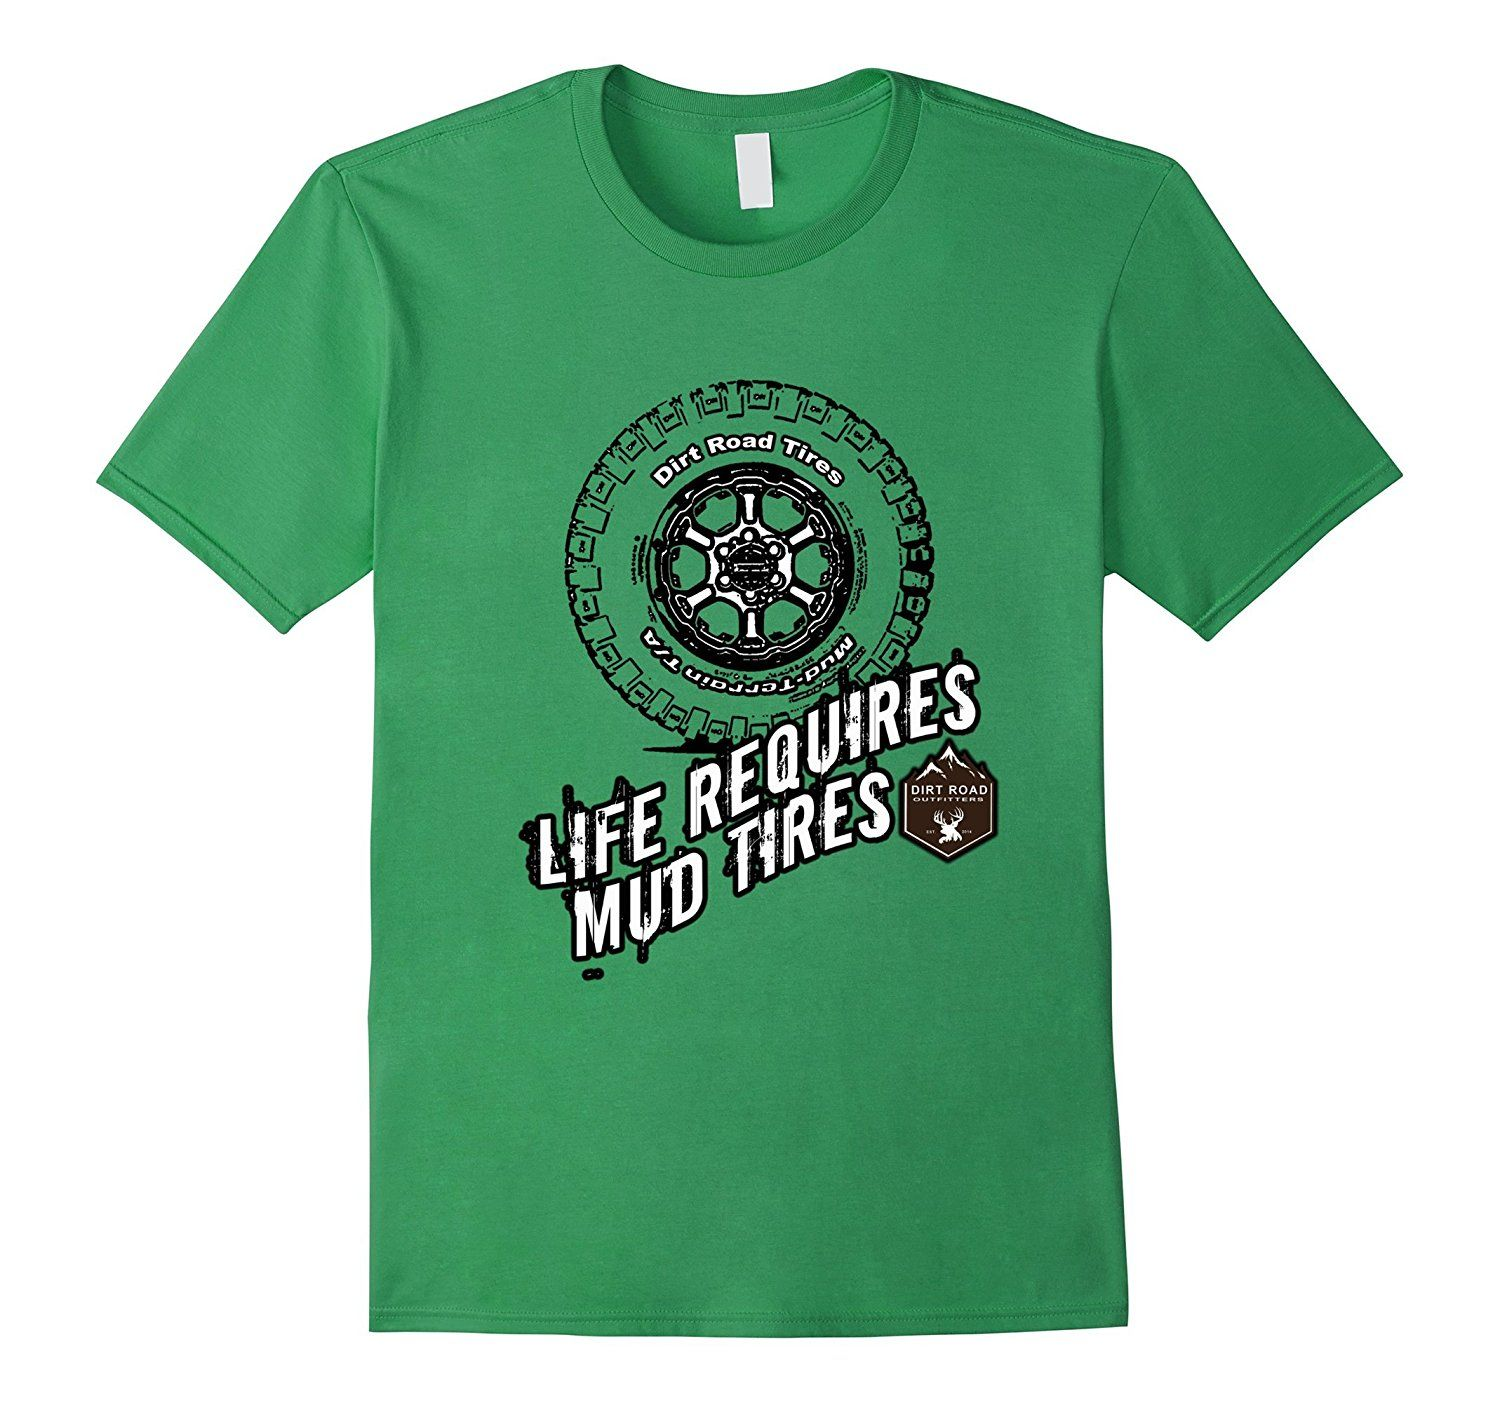 Amazon.com: RedNek Tees: Life Requires Mud Tires: Clothing